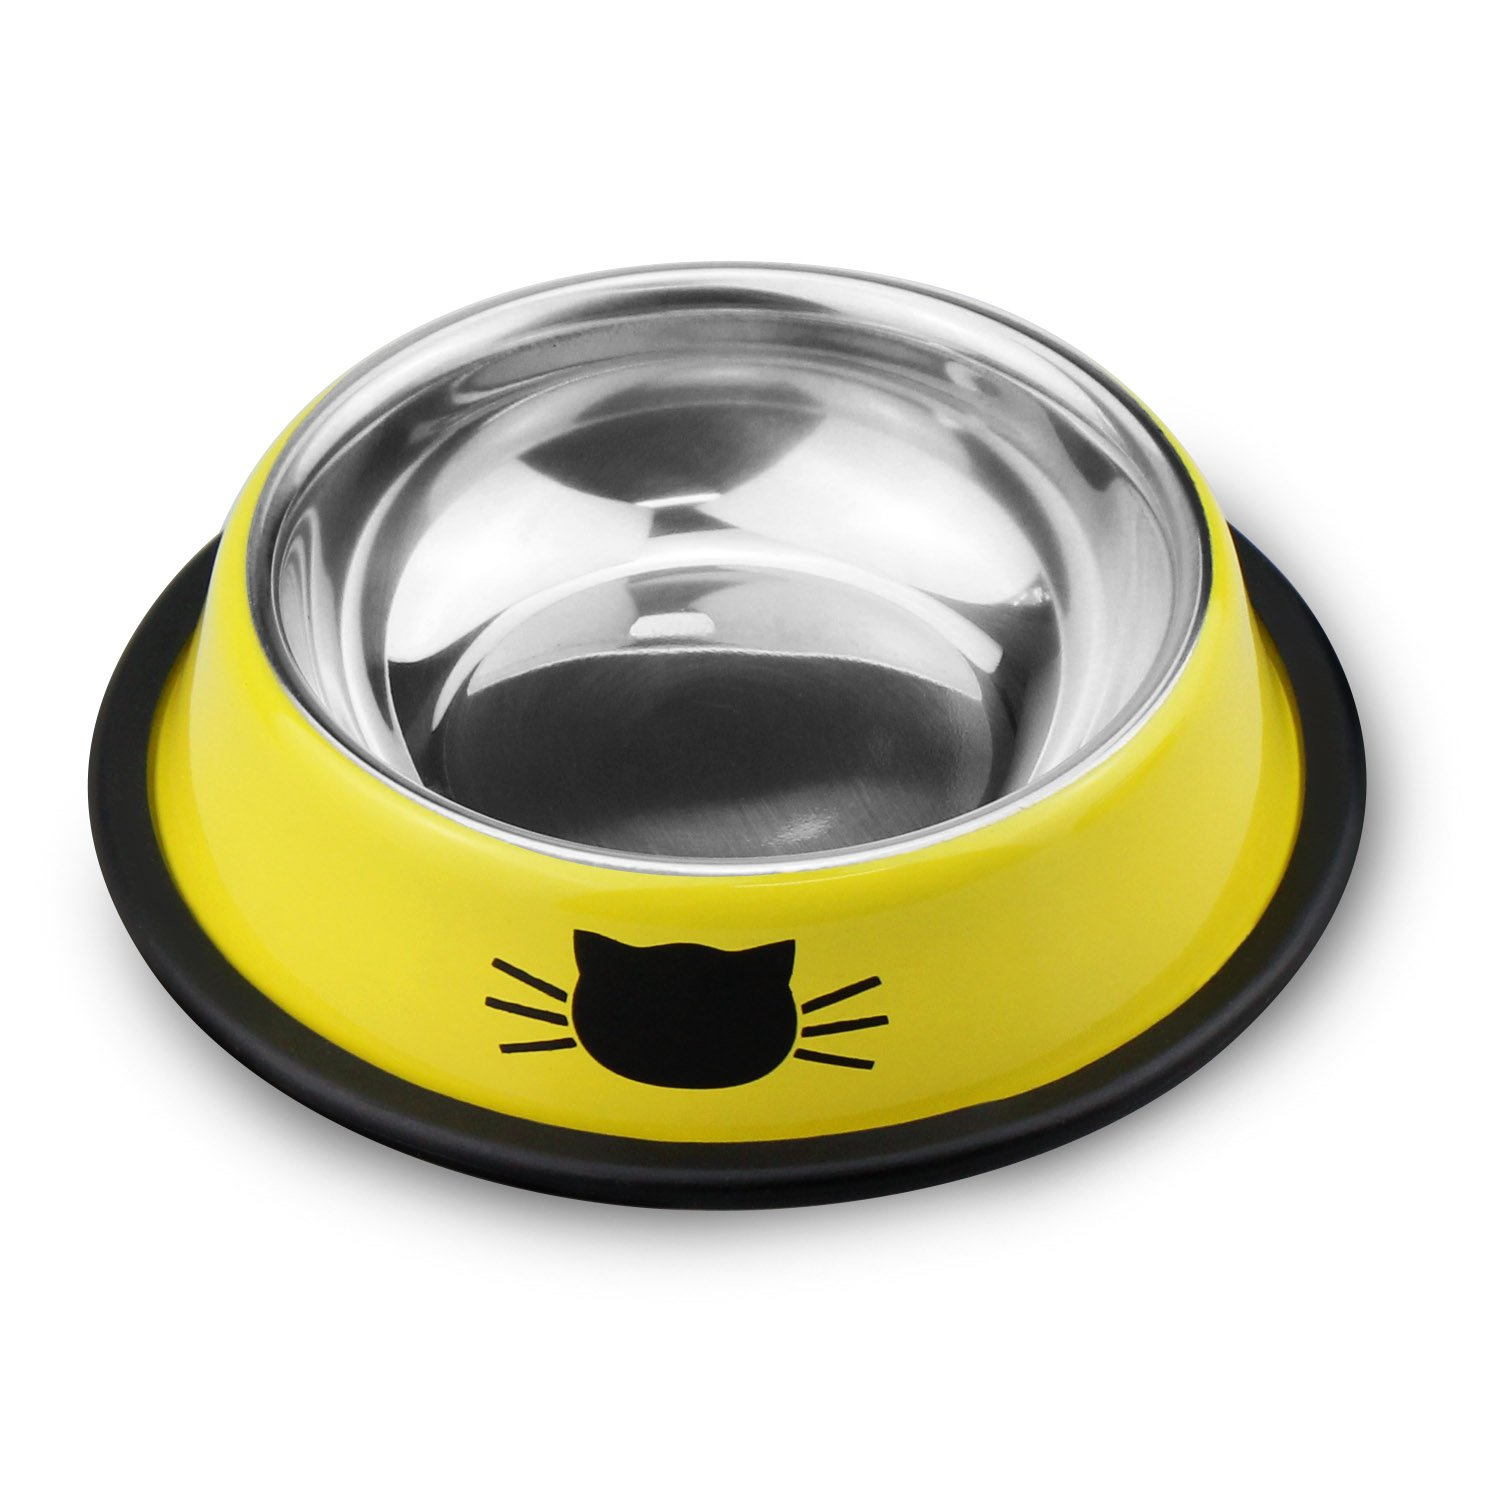 Comsmart Stainless Steel Pet Cat Bowl Kitten Puppy Dish Bowl with Cute Cats Painted Non-Skid for Small Dogs Cats Animals (Set of 2) (Yellow/Yellow) by Comsmart (Image #4)